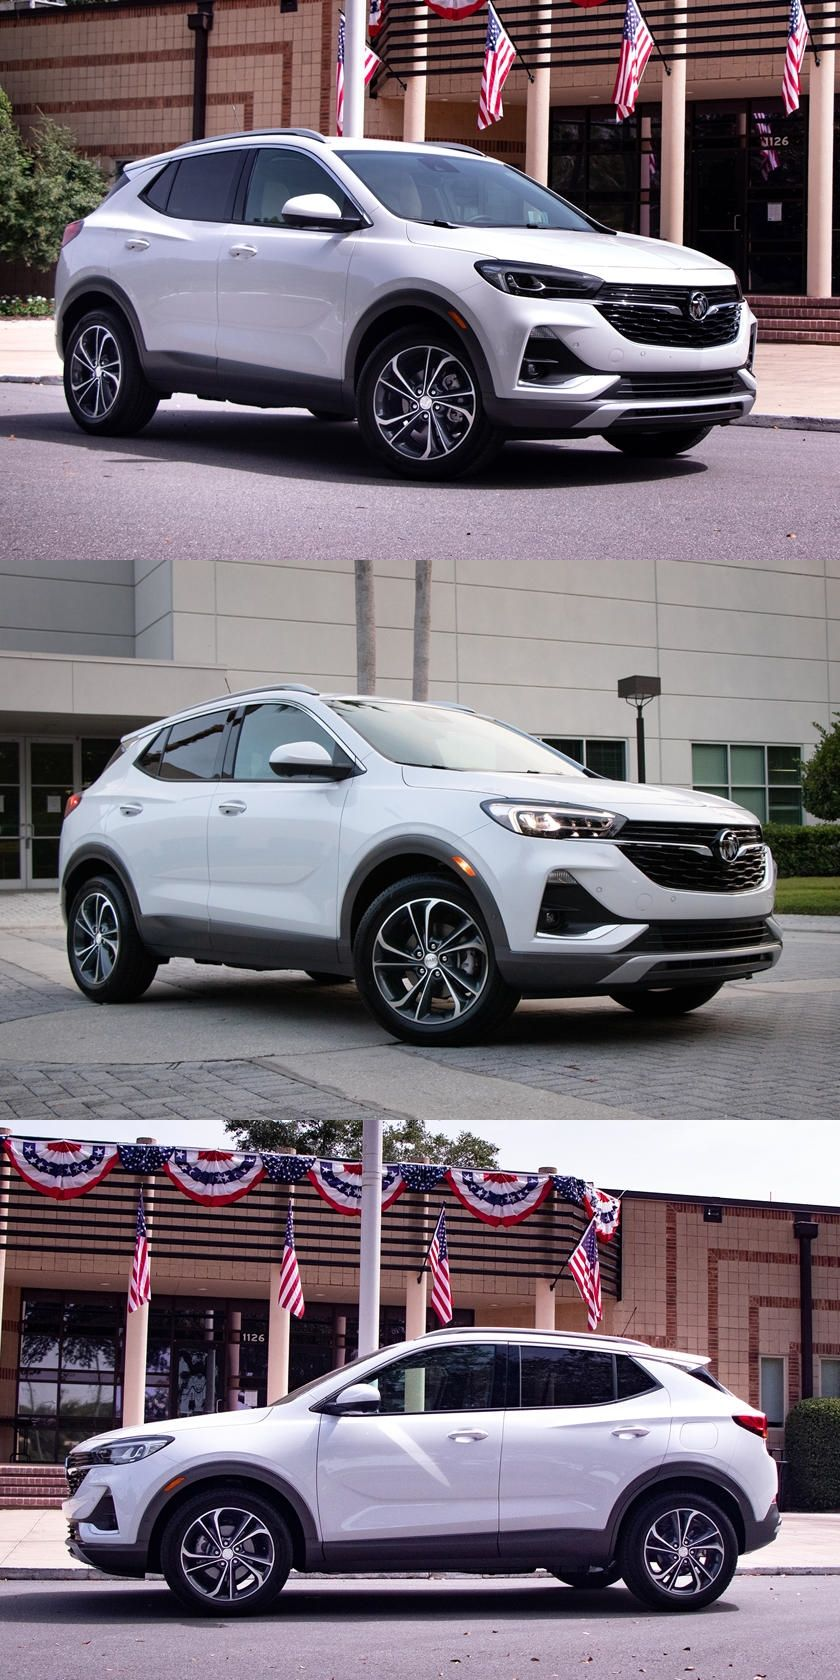 Buick Has Big Plans For Its Newest Model In America The Encore Gx Could Become Its Next Best Seller In 2020 Buick New Model Subcompact